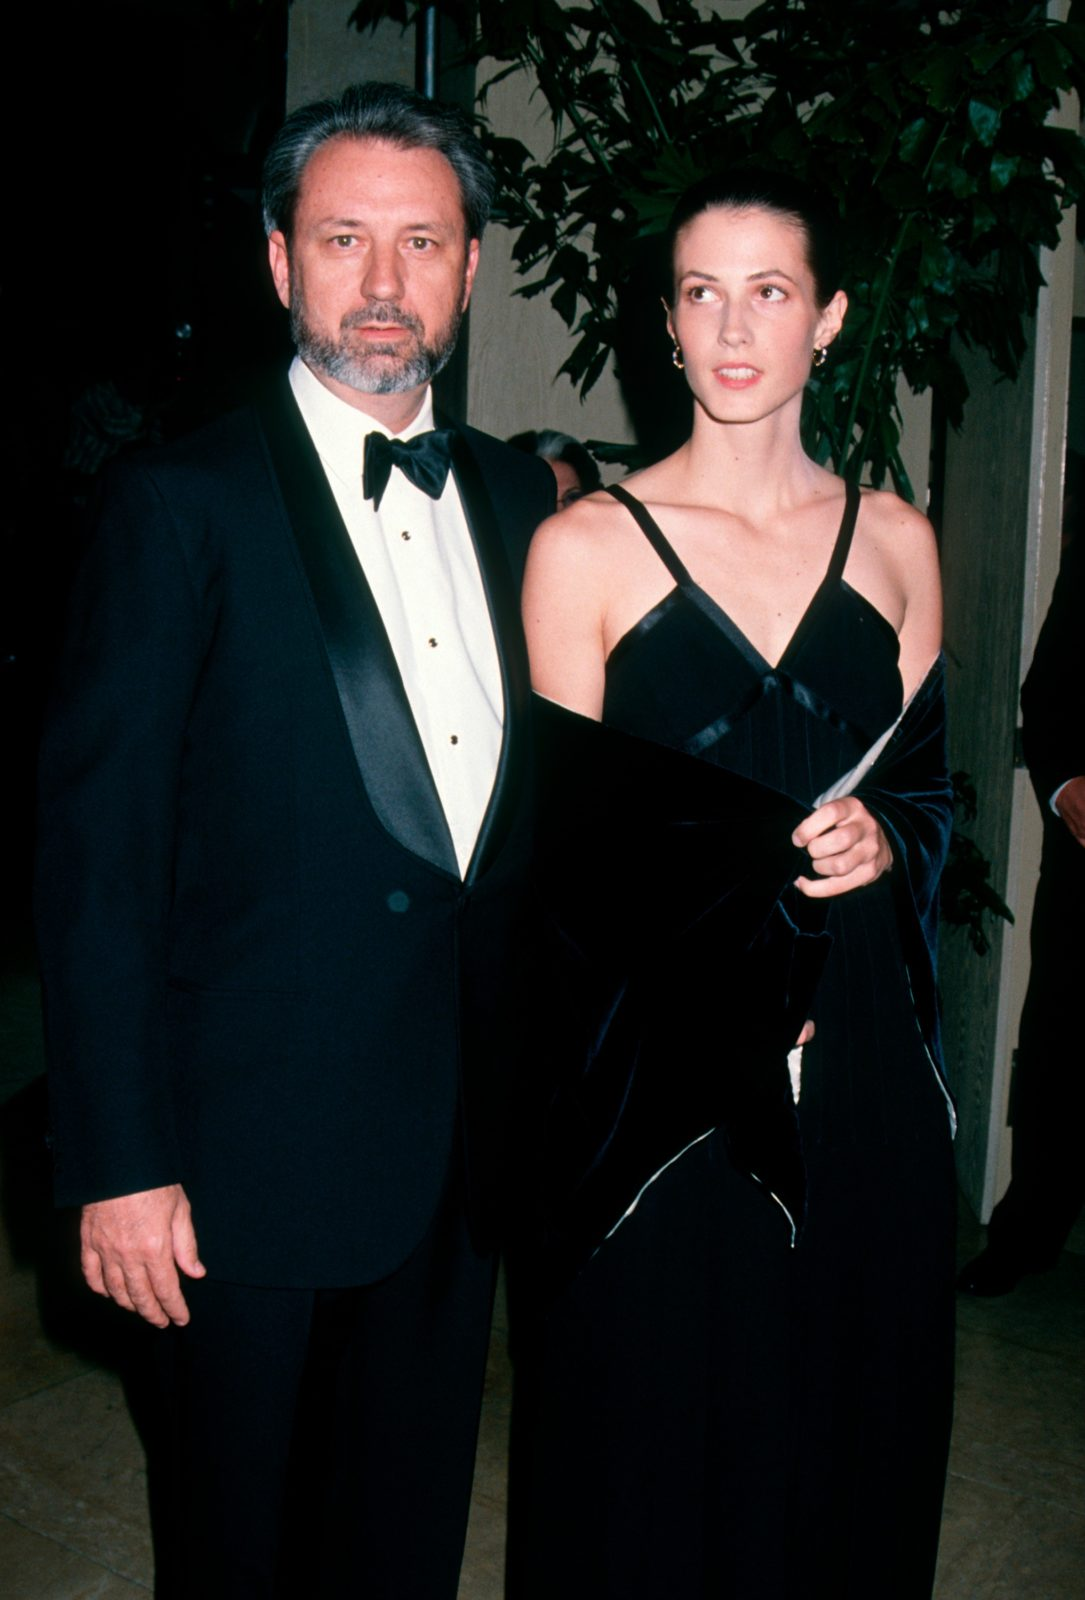 Mike Nesmith and third wife Victoria Kennedy in 1993. Source: Getty.